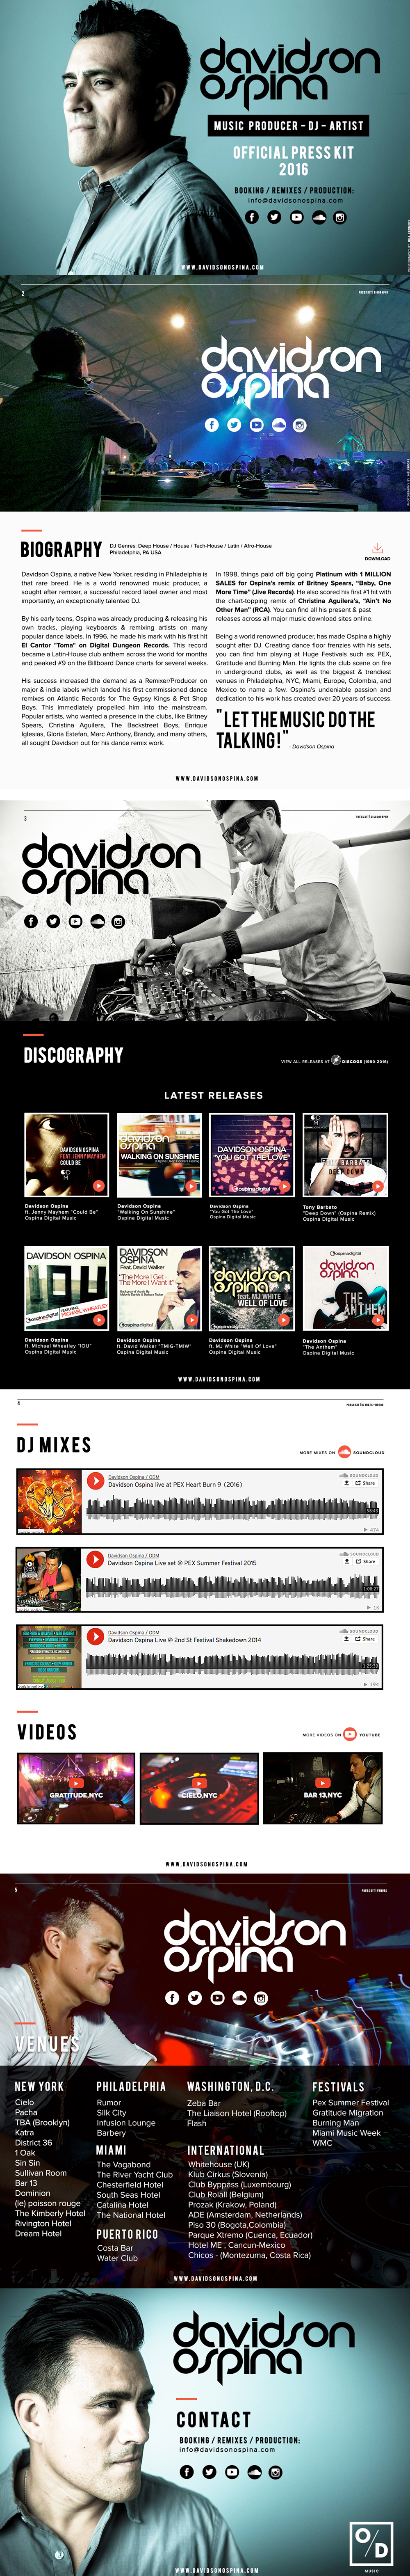 mini stix dj resume press kit resume template the design of this web page is very inspiring the biography images and